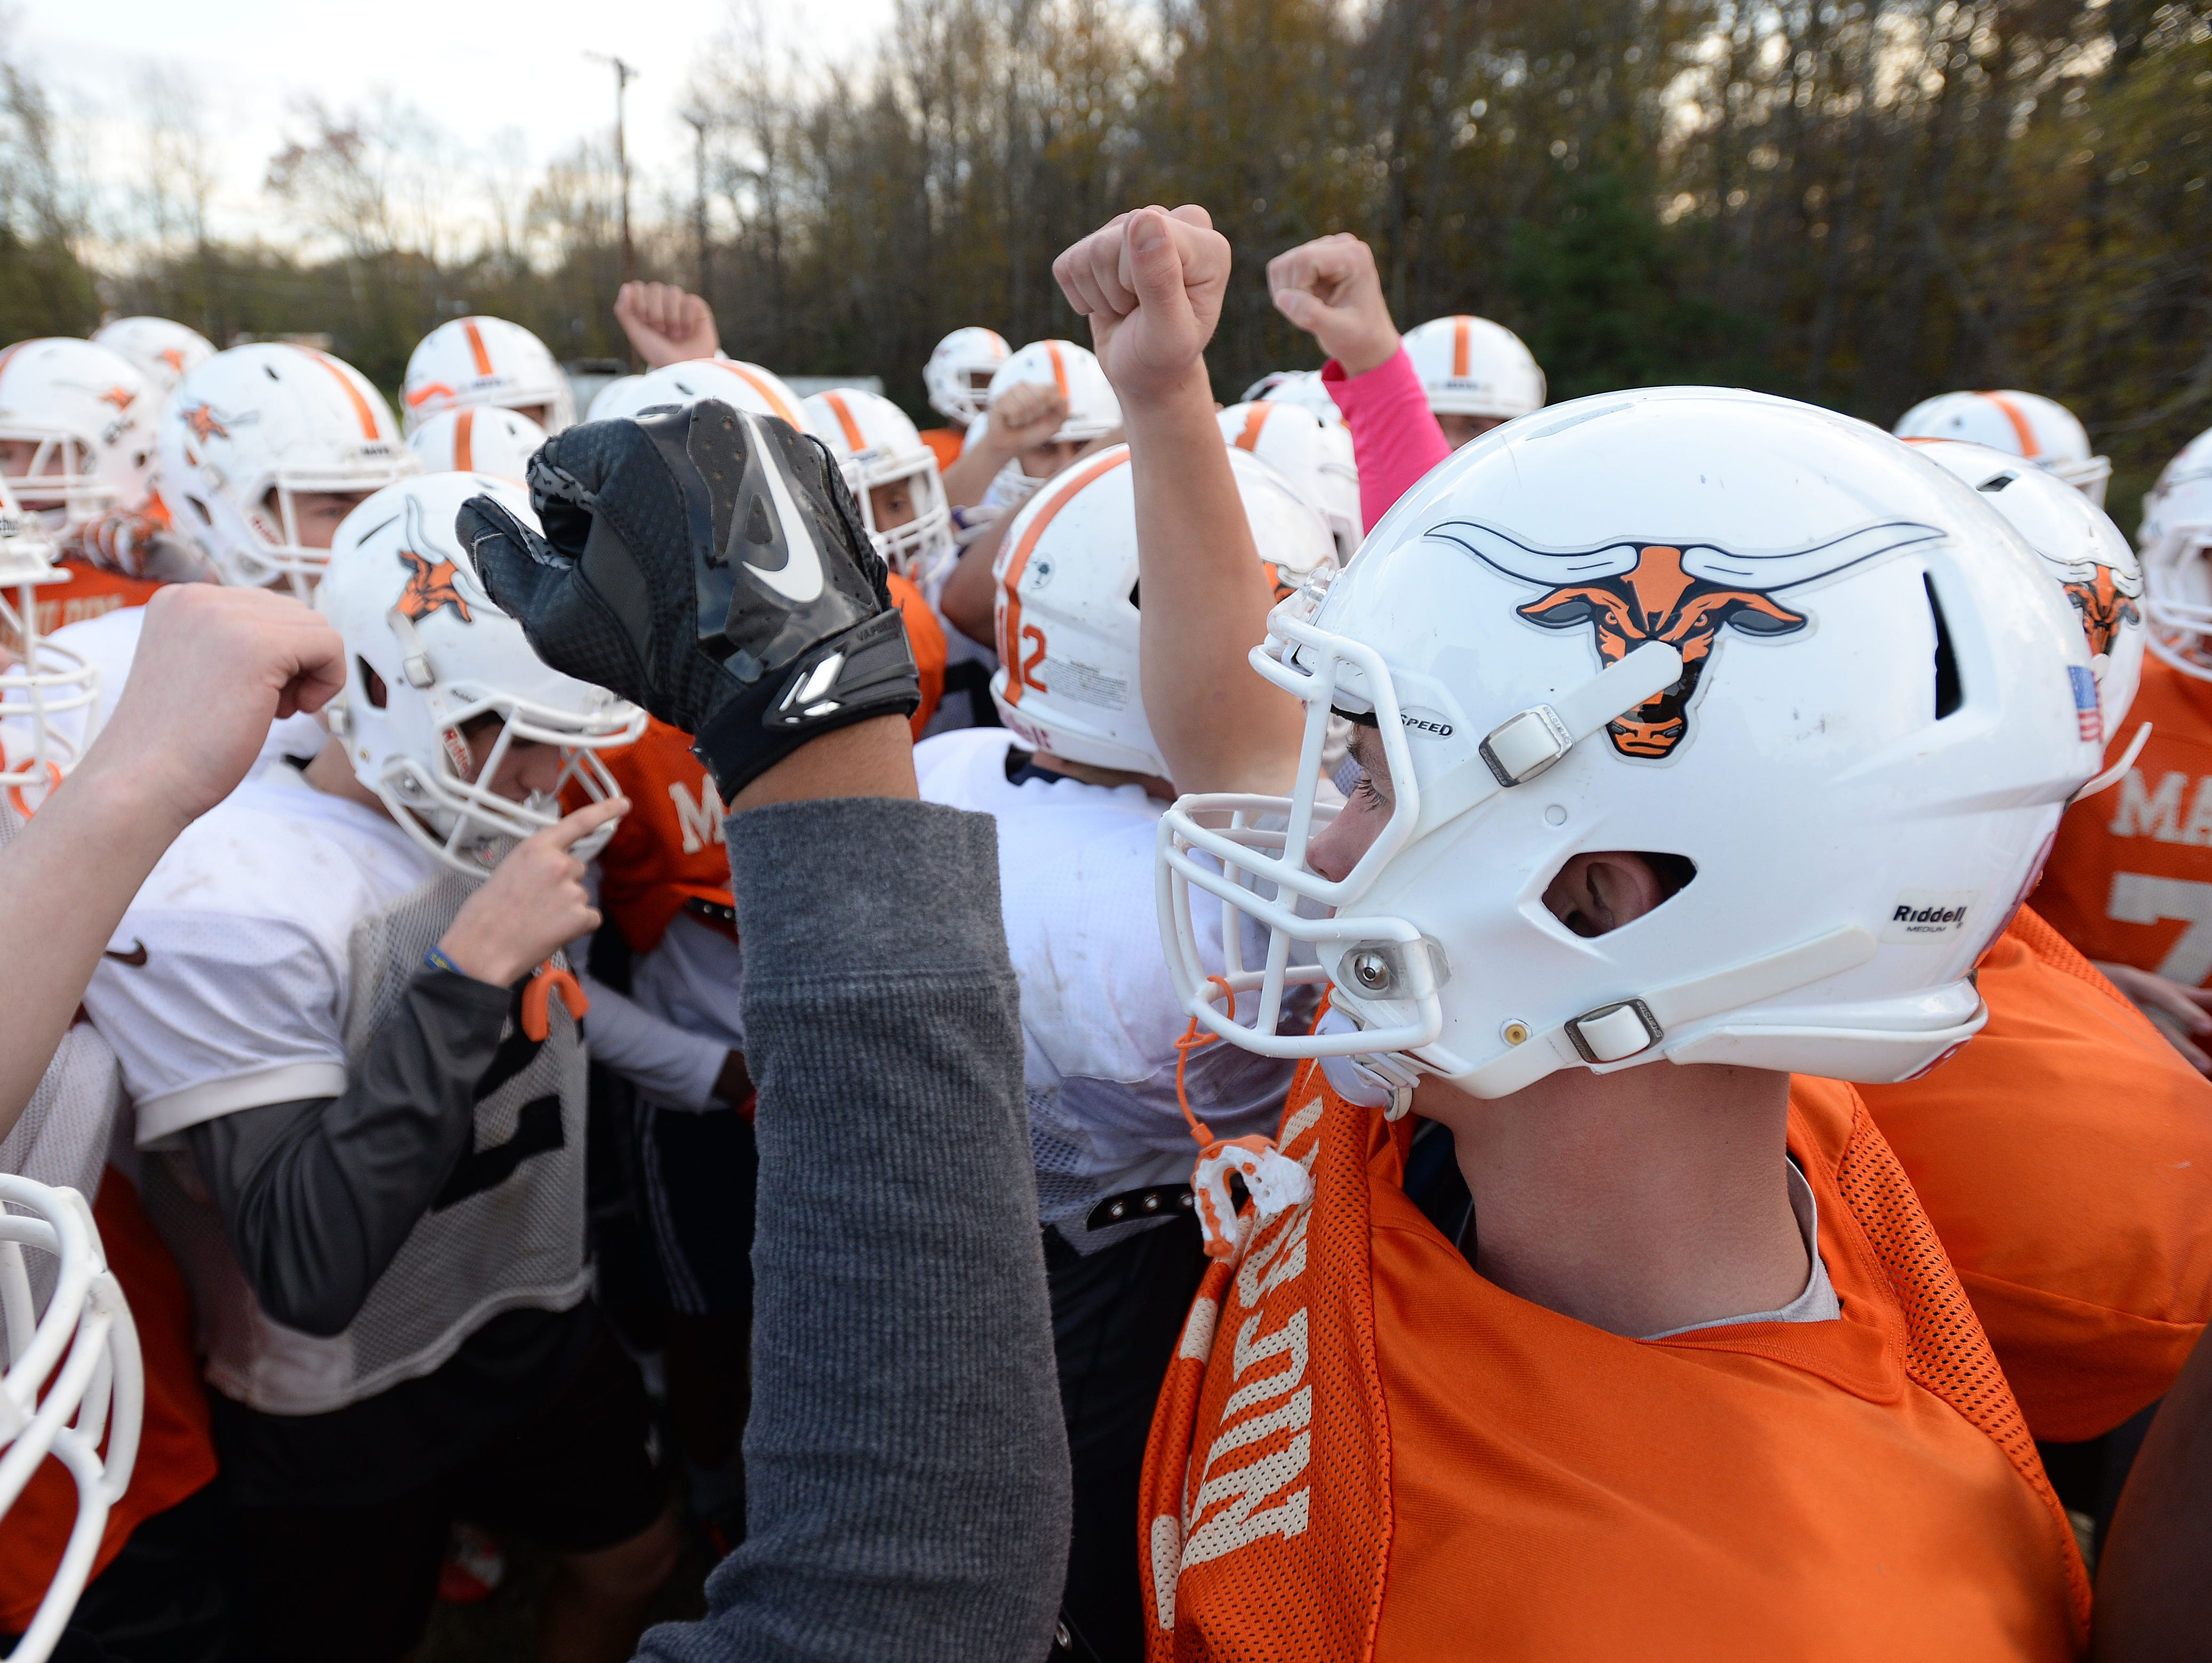 The Mauldin Mavericks practice Monday, November 16, 2015. Mauldin will play Hillcrest in the 1st round of the AAAA playoffs Friday at Hillcrest.